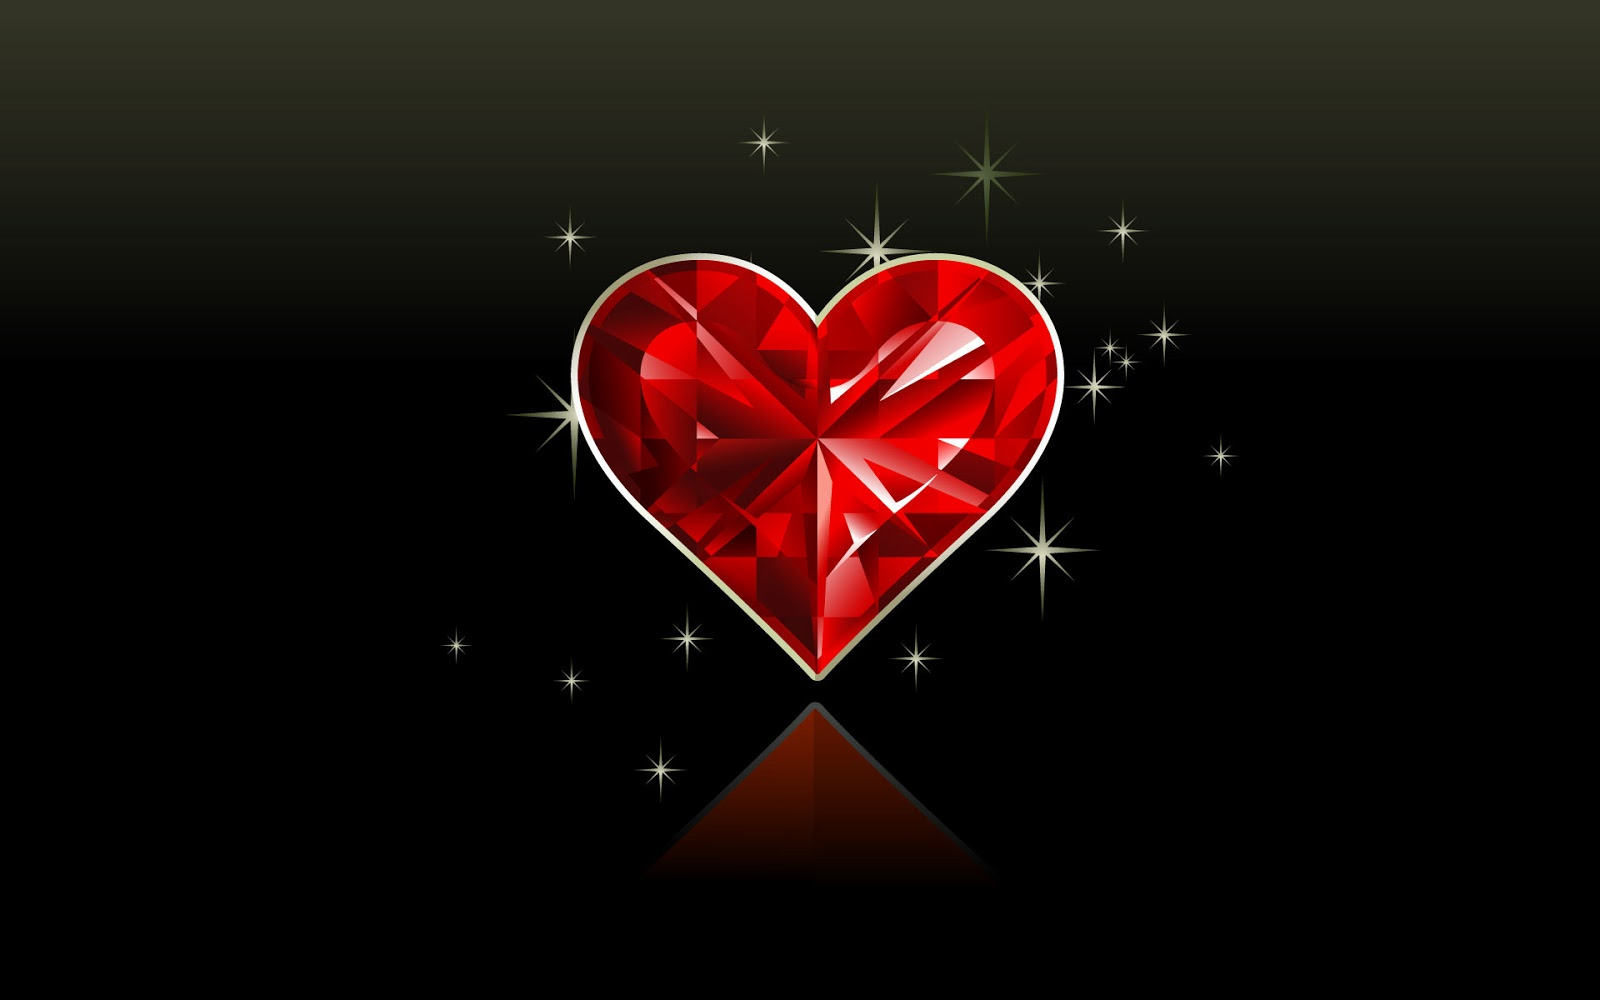 Love Wallpaper Pic : Heart love background, wallpaper hearts love Free Stock Photos Web